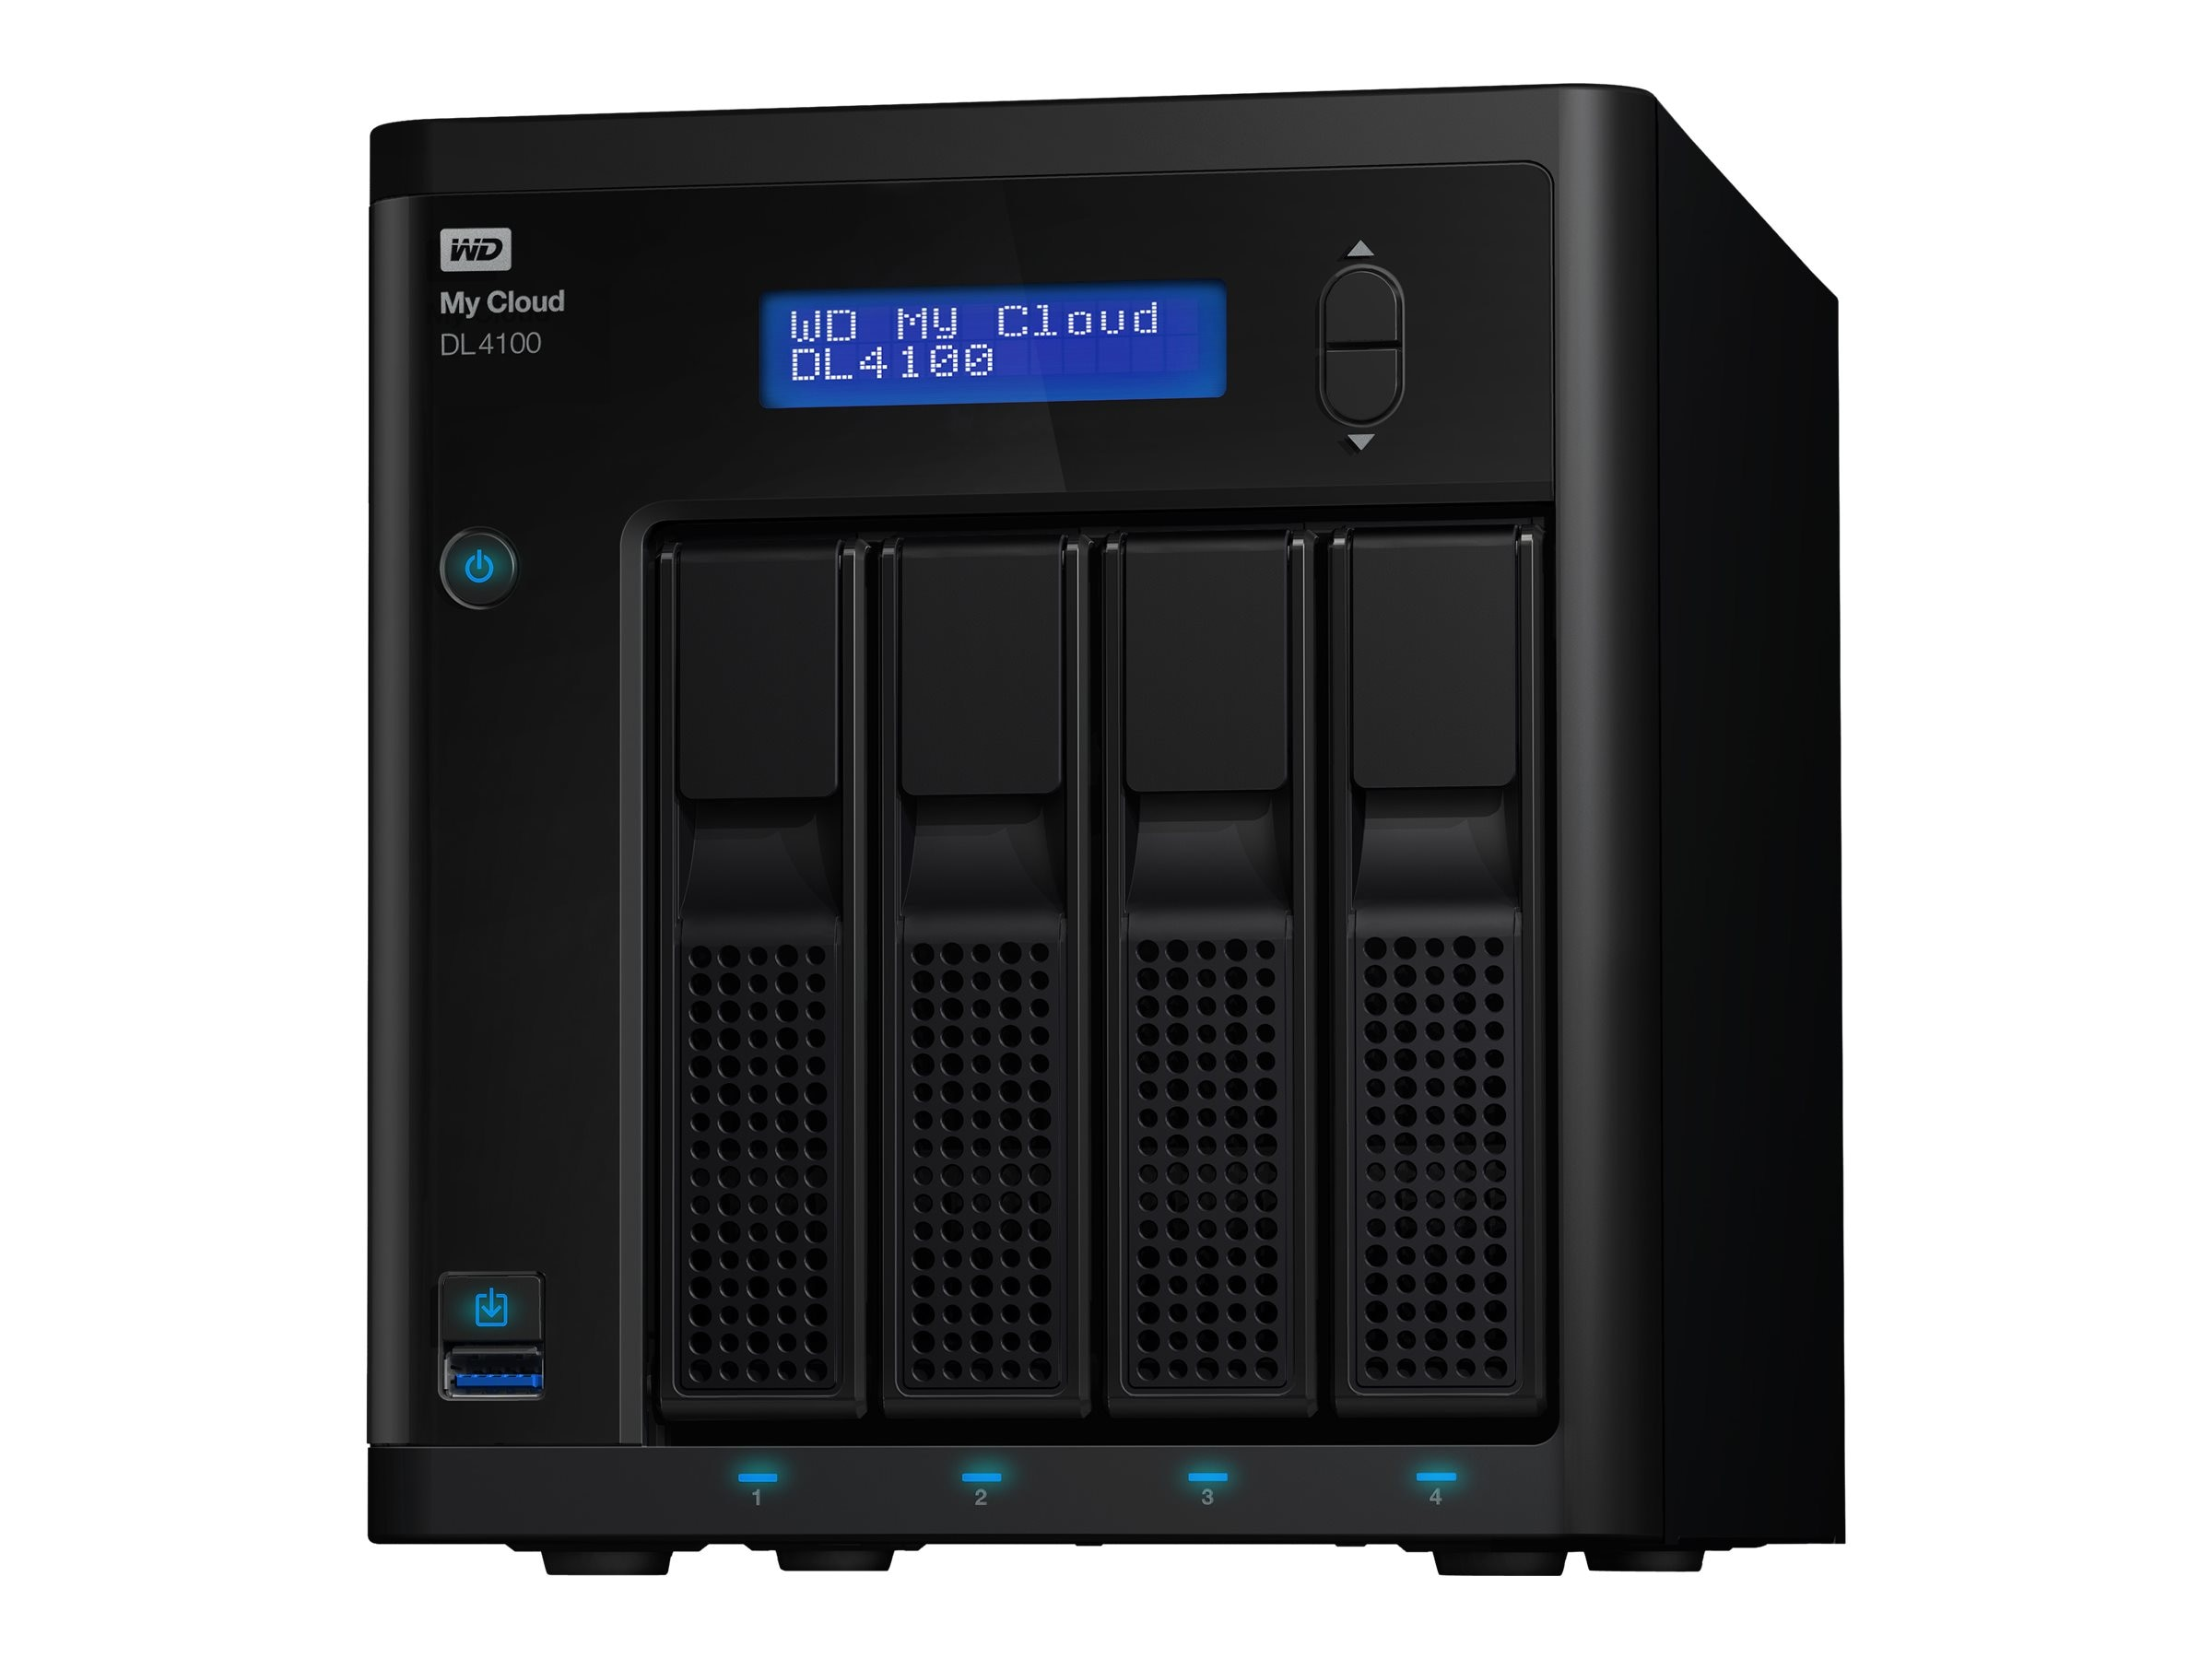 WD 8TB My Cloud DL4100 Network Attached Storage, WDBNEZ0080KBK-NESN, 18442763, Network Attached Storage